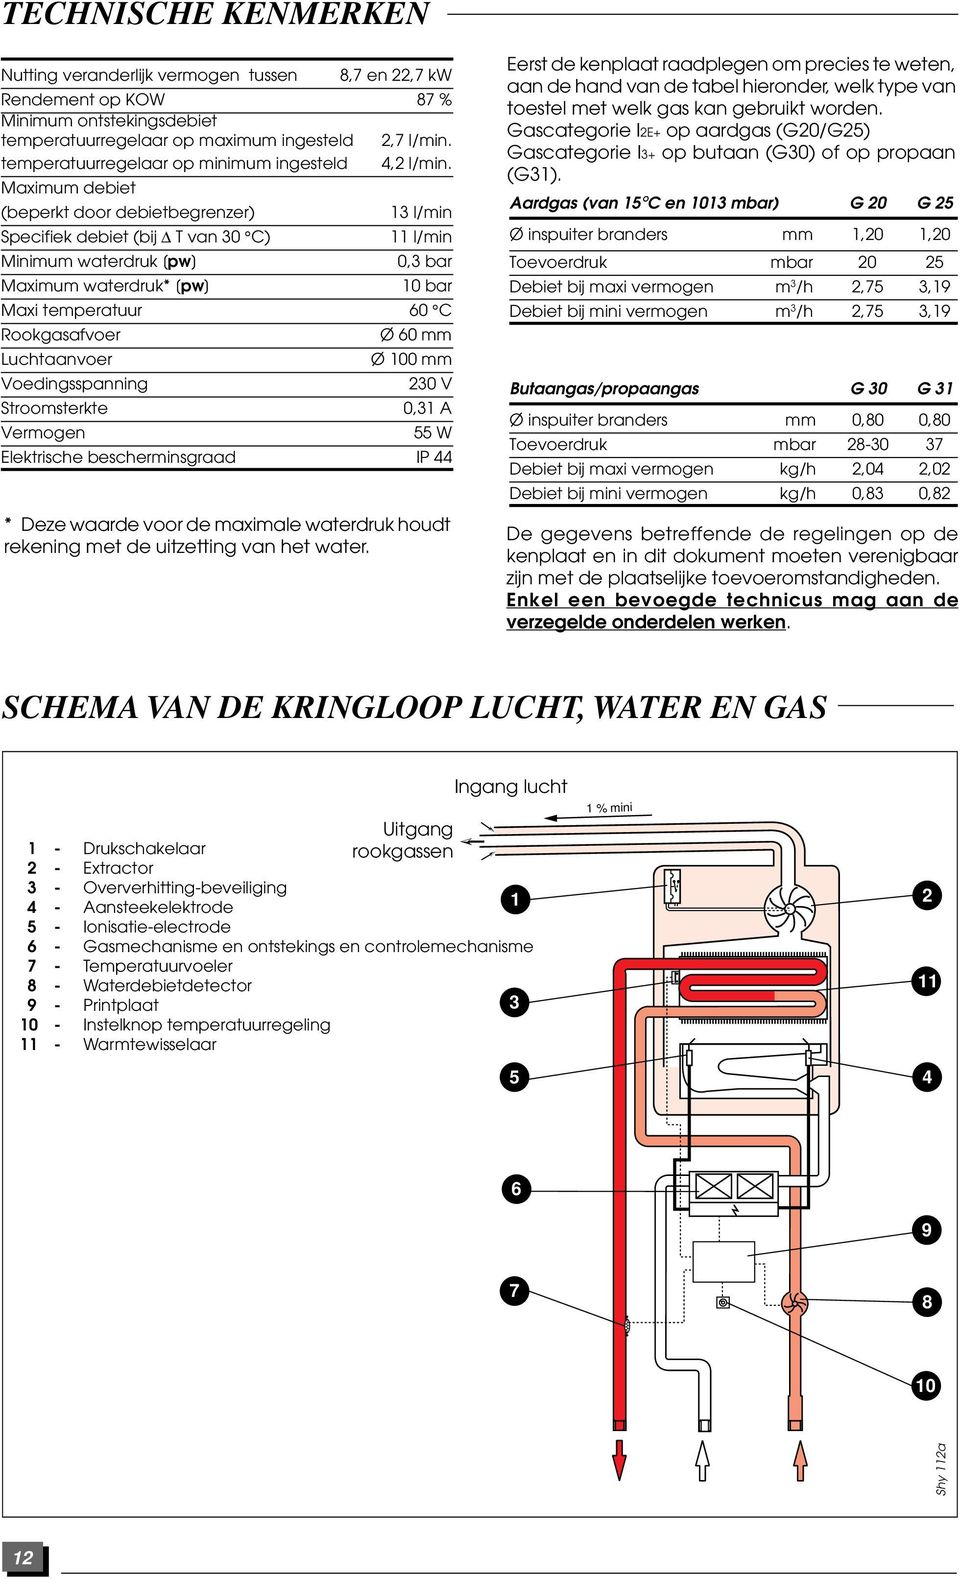 Maximum debiet (beperkt door debietbegrenzer) 13 l/min Specifiek debiet (bij T van 30 C) 11 l/min Minimum waterdruk [pw] Maximum waterdruk* [pw] 0,3 bar 10 bar Maxi temperatuur 60 C Rookgasafvoer